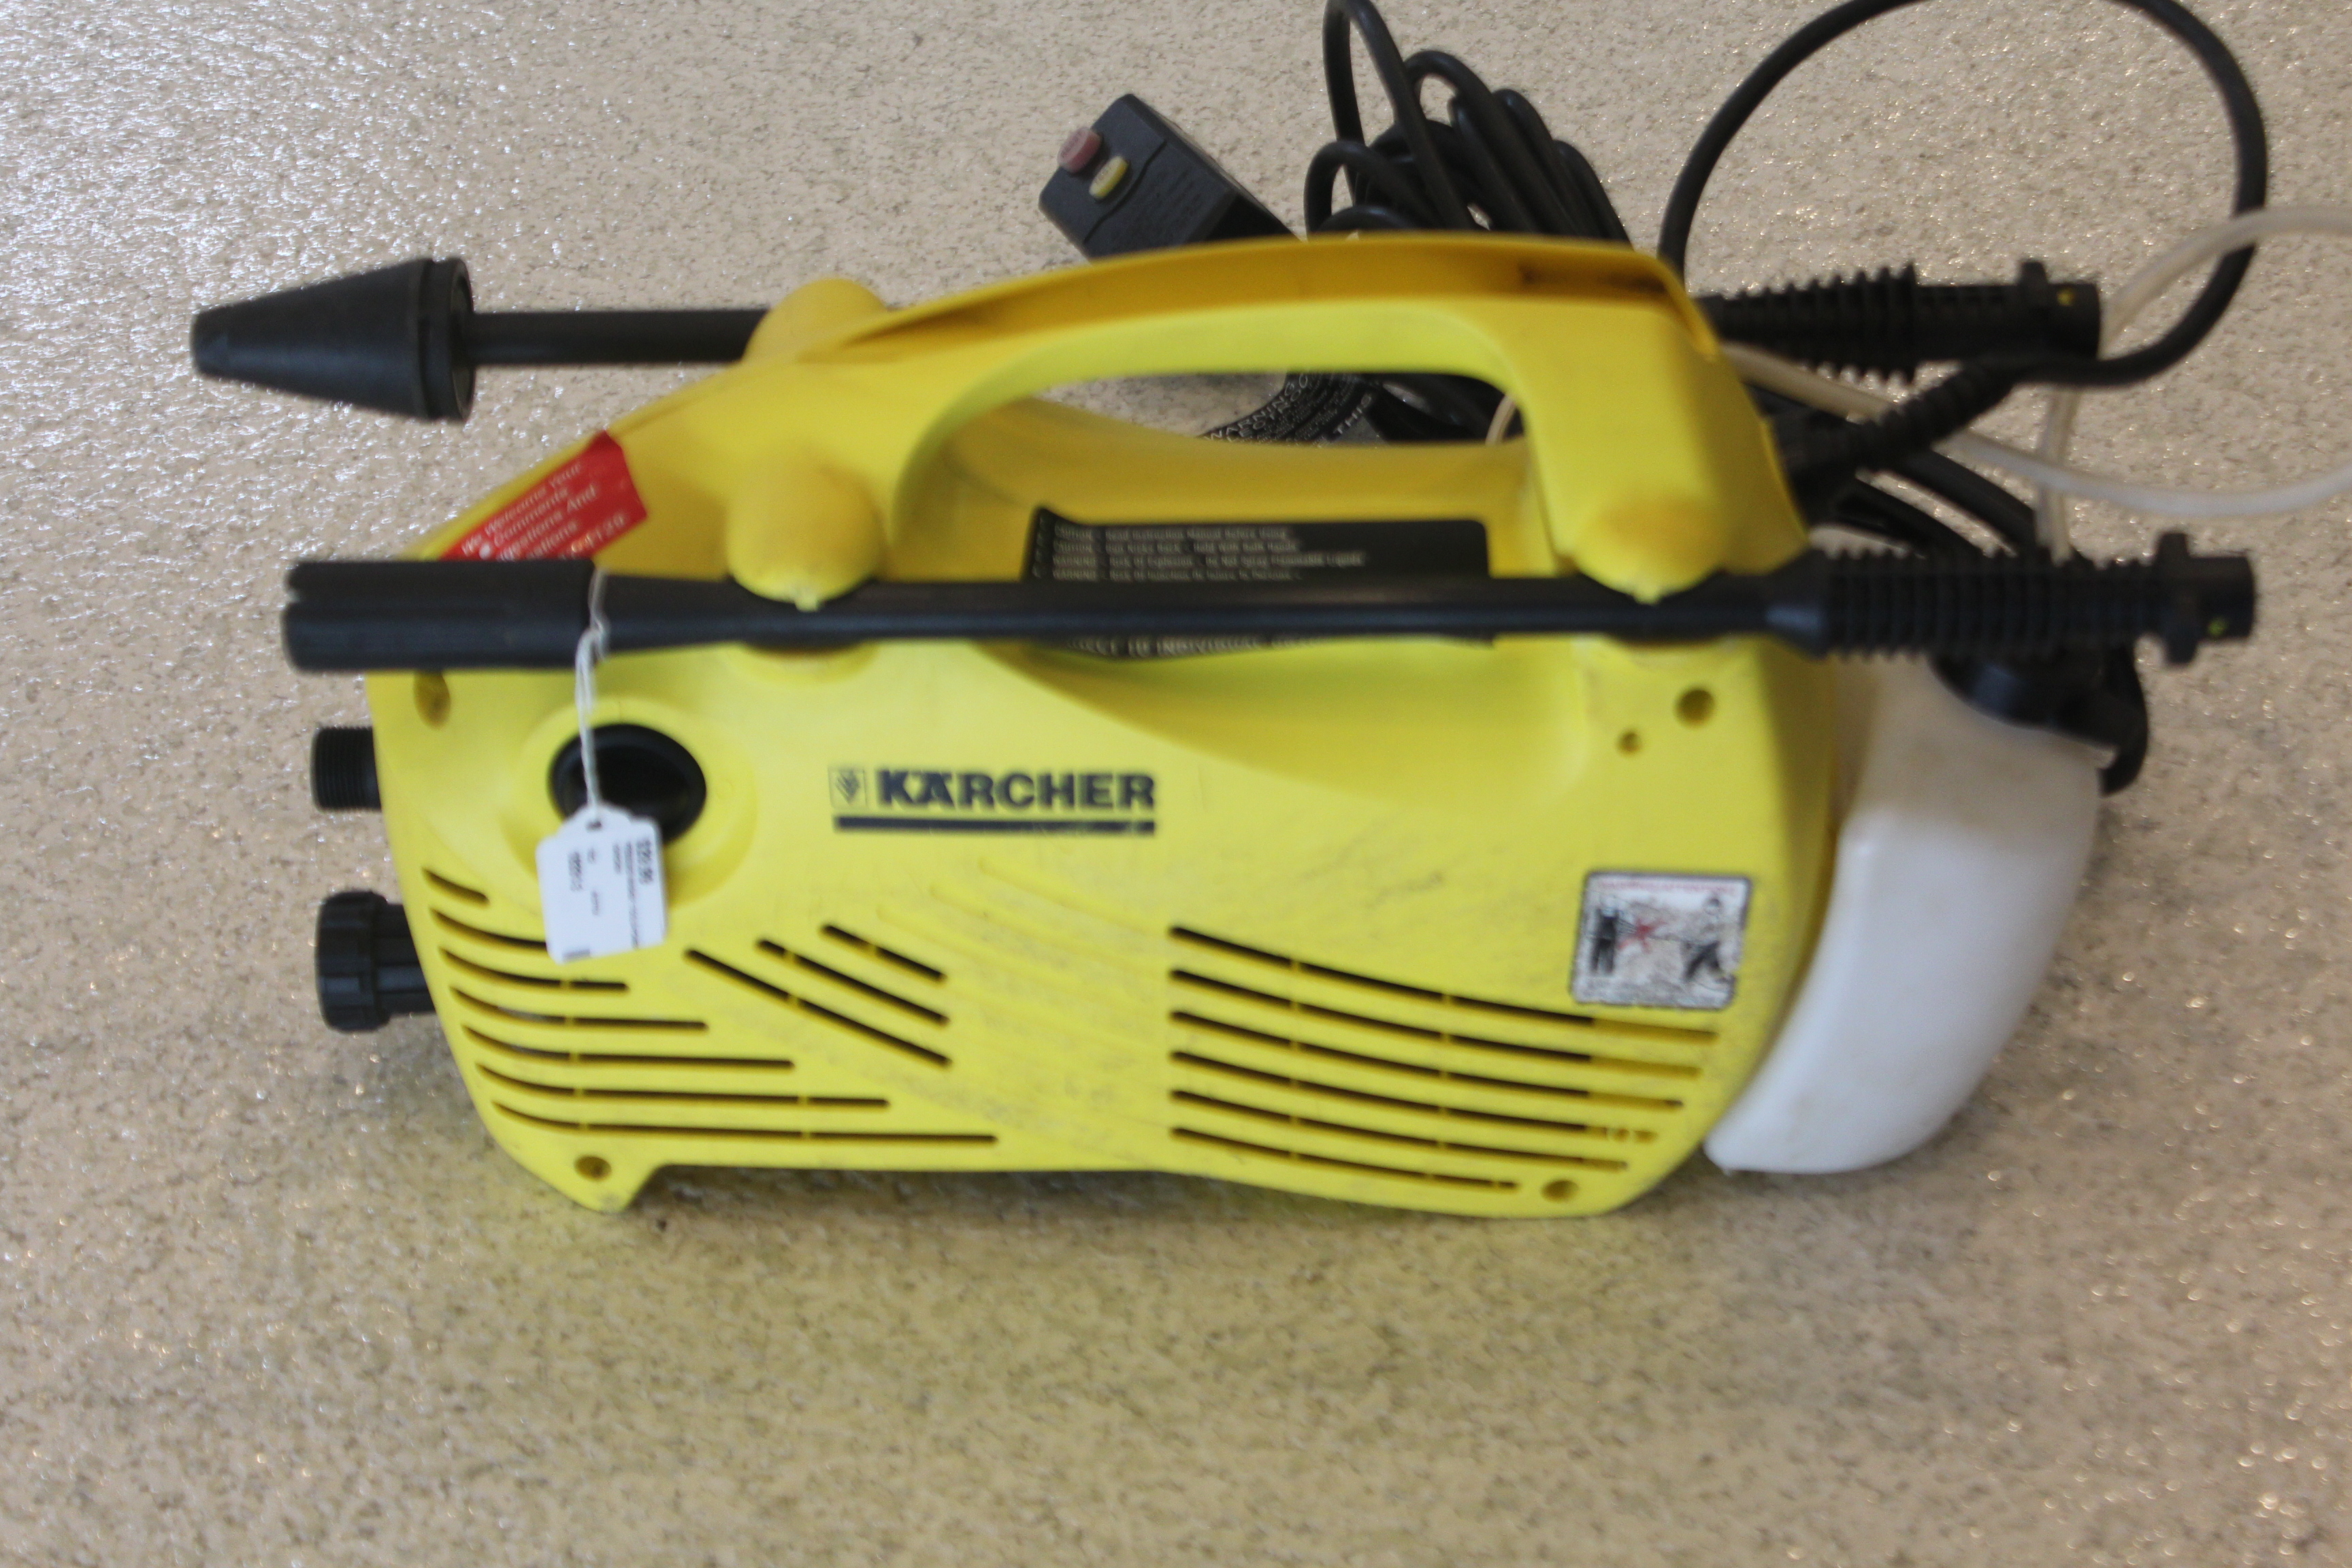 Karcher Hand Held Pressure Washer